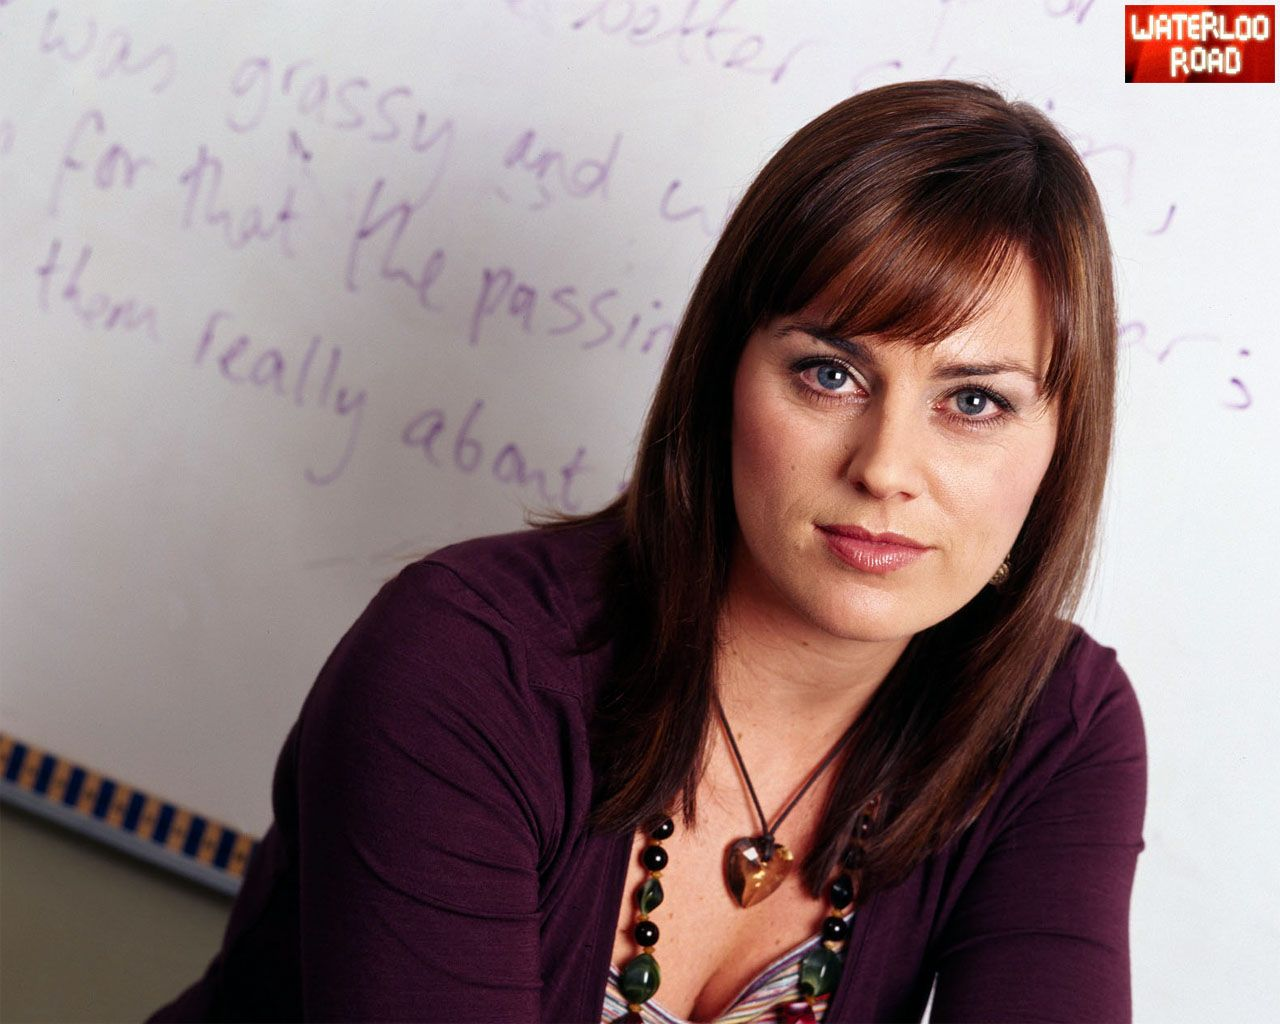 Jill halfpenny porn videos freeview topic interesting